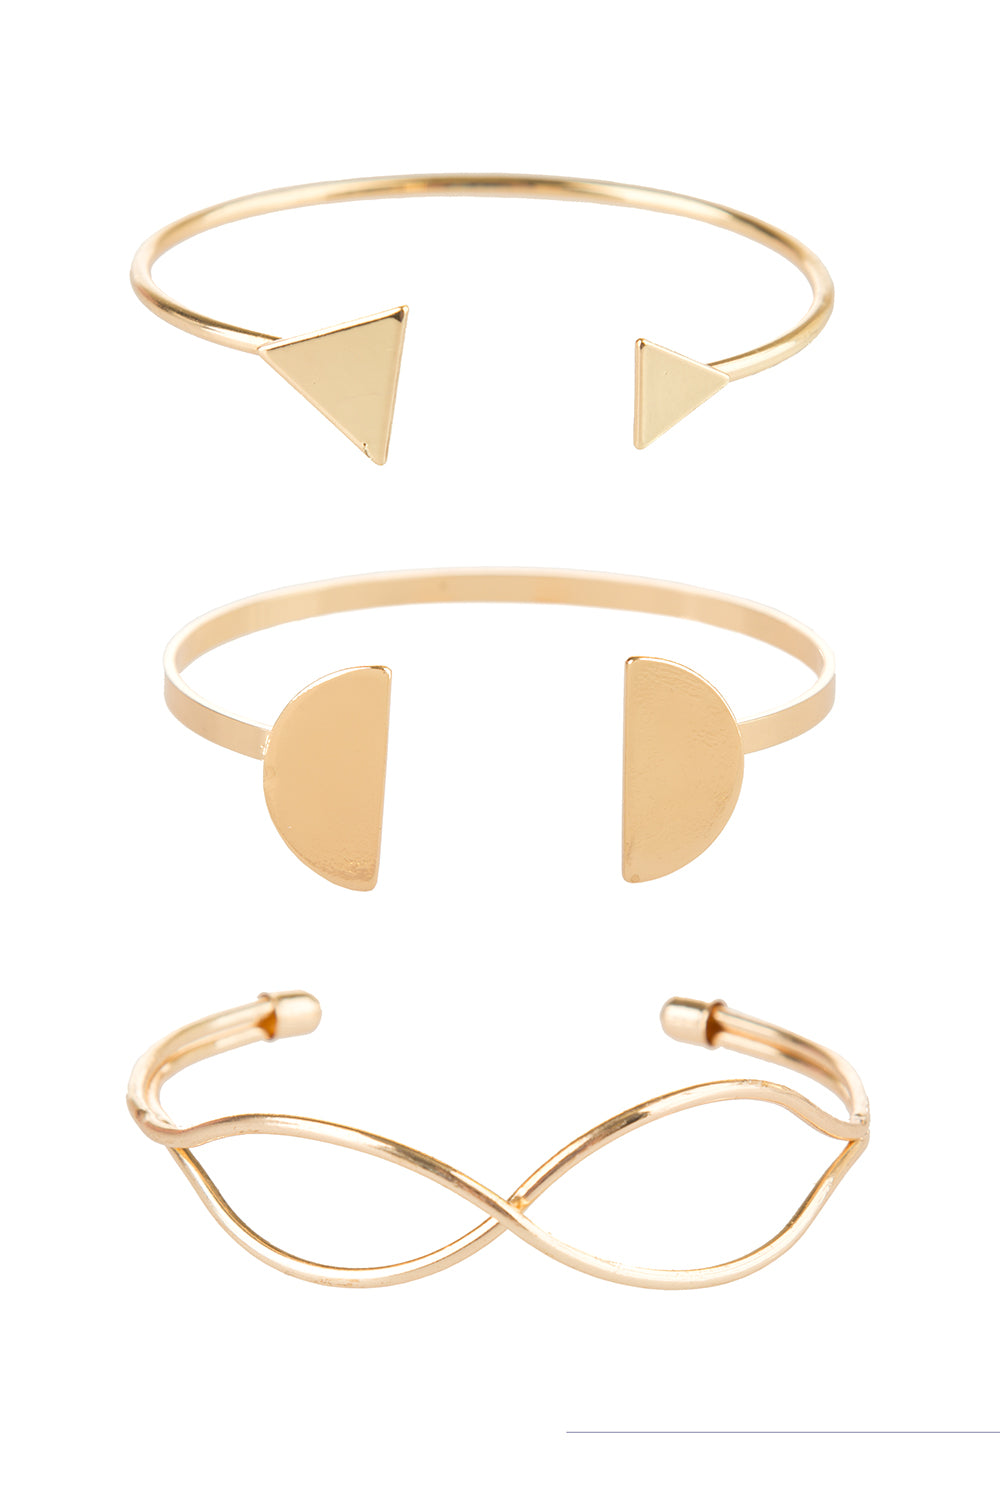 Type 3 Golden Girl Bracelet Set